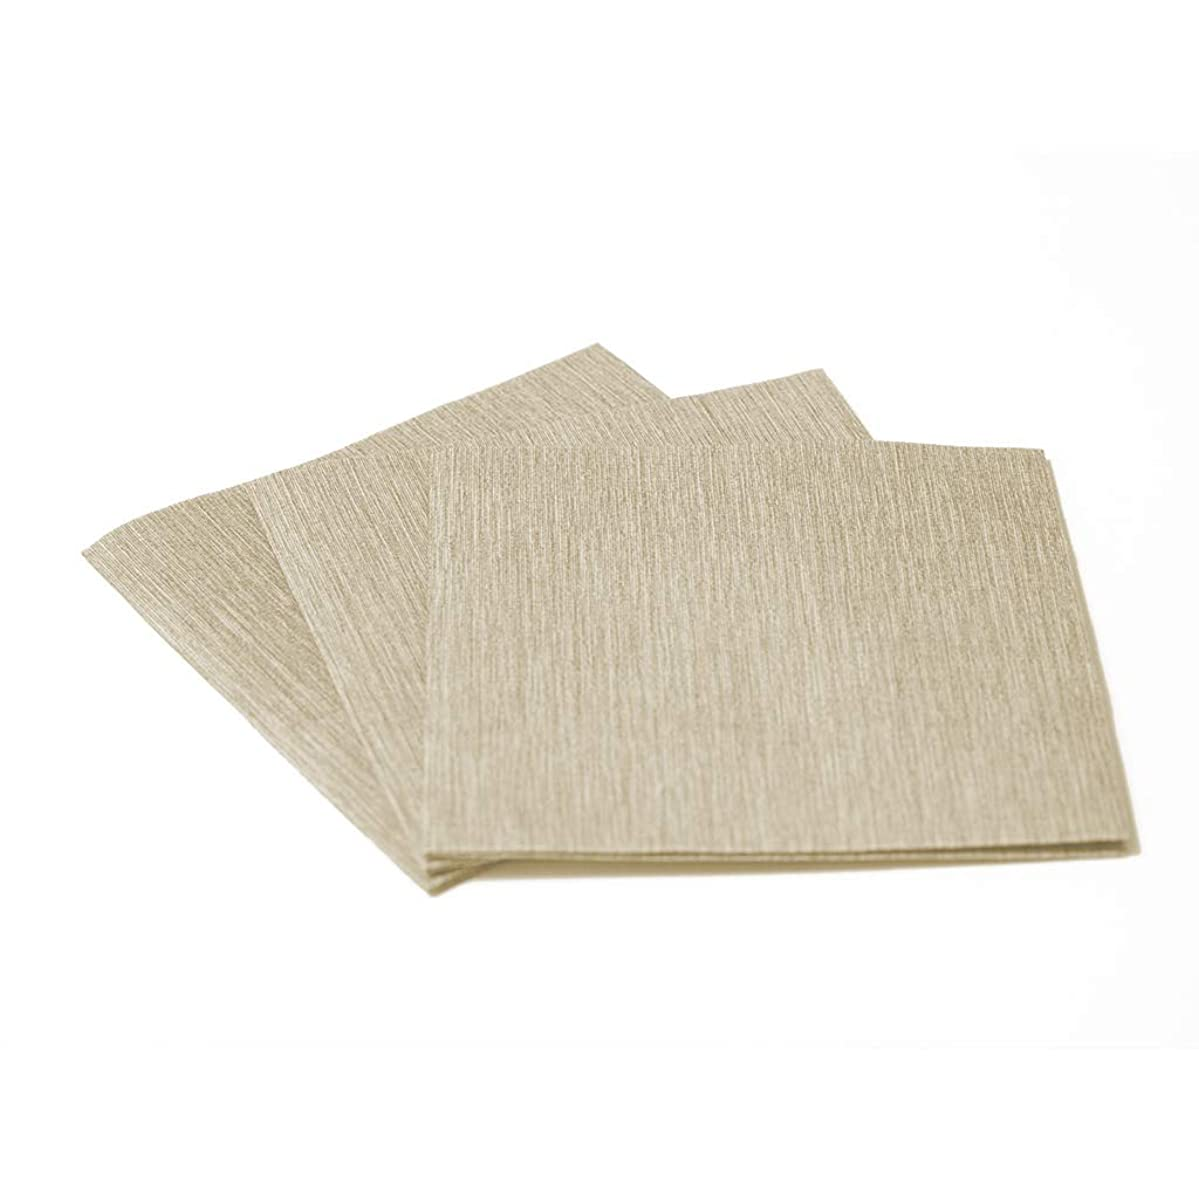 the napkins Deluxe Cocktail - Napkin 25X25Cm - ? Ply Luxury Paper Napkin - Feels Like Cloth (Taupe)